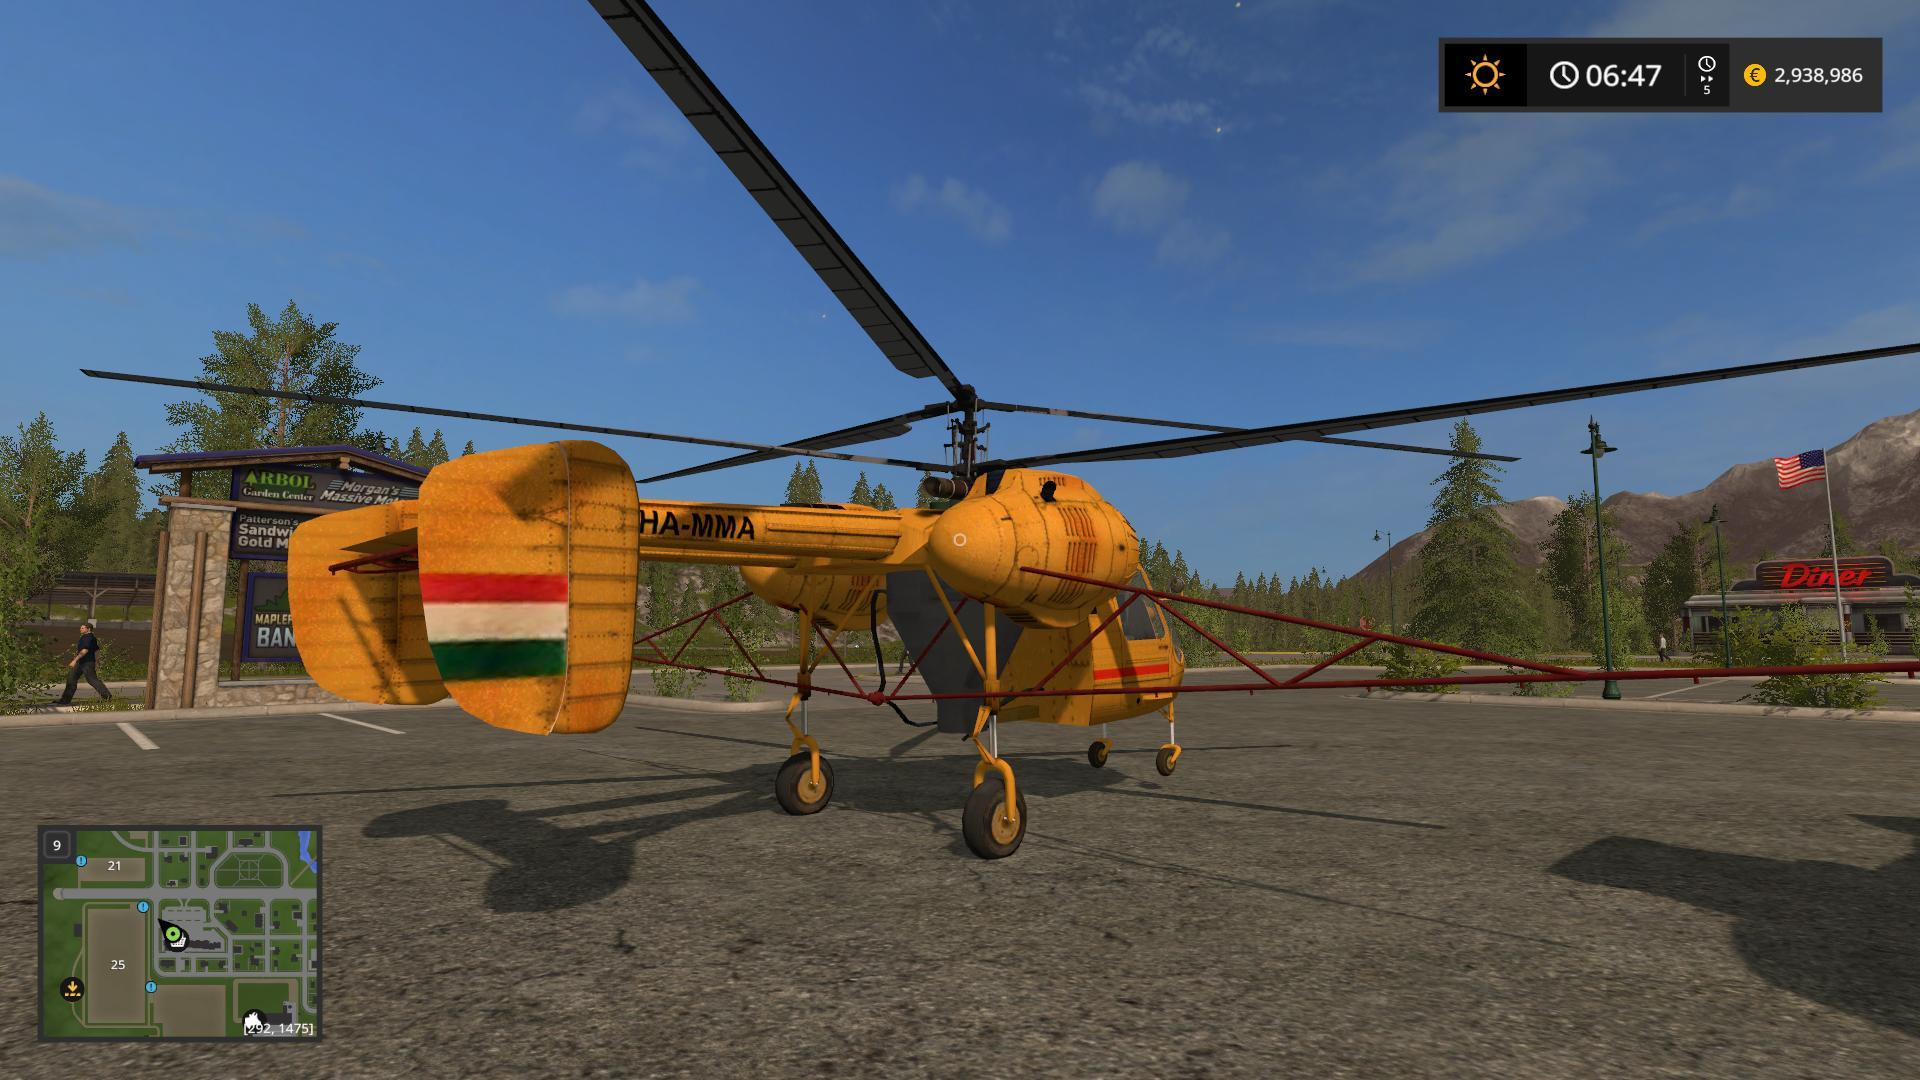 heli logging with Helikopter Ka26 V3 For Fs17 on 7116926 Helicopter Logging 2 furthermore 61 together with Photo Gallery as well Le Ch 47 Une Conception Hors Du  mun Par Philippe Cauchi additionally Climbing2.